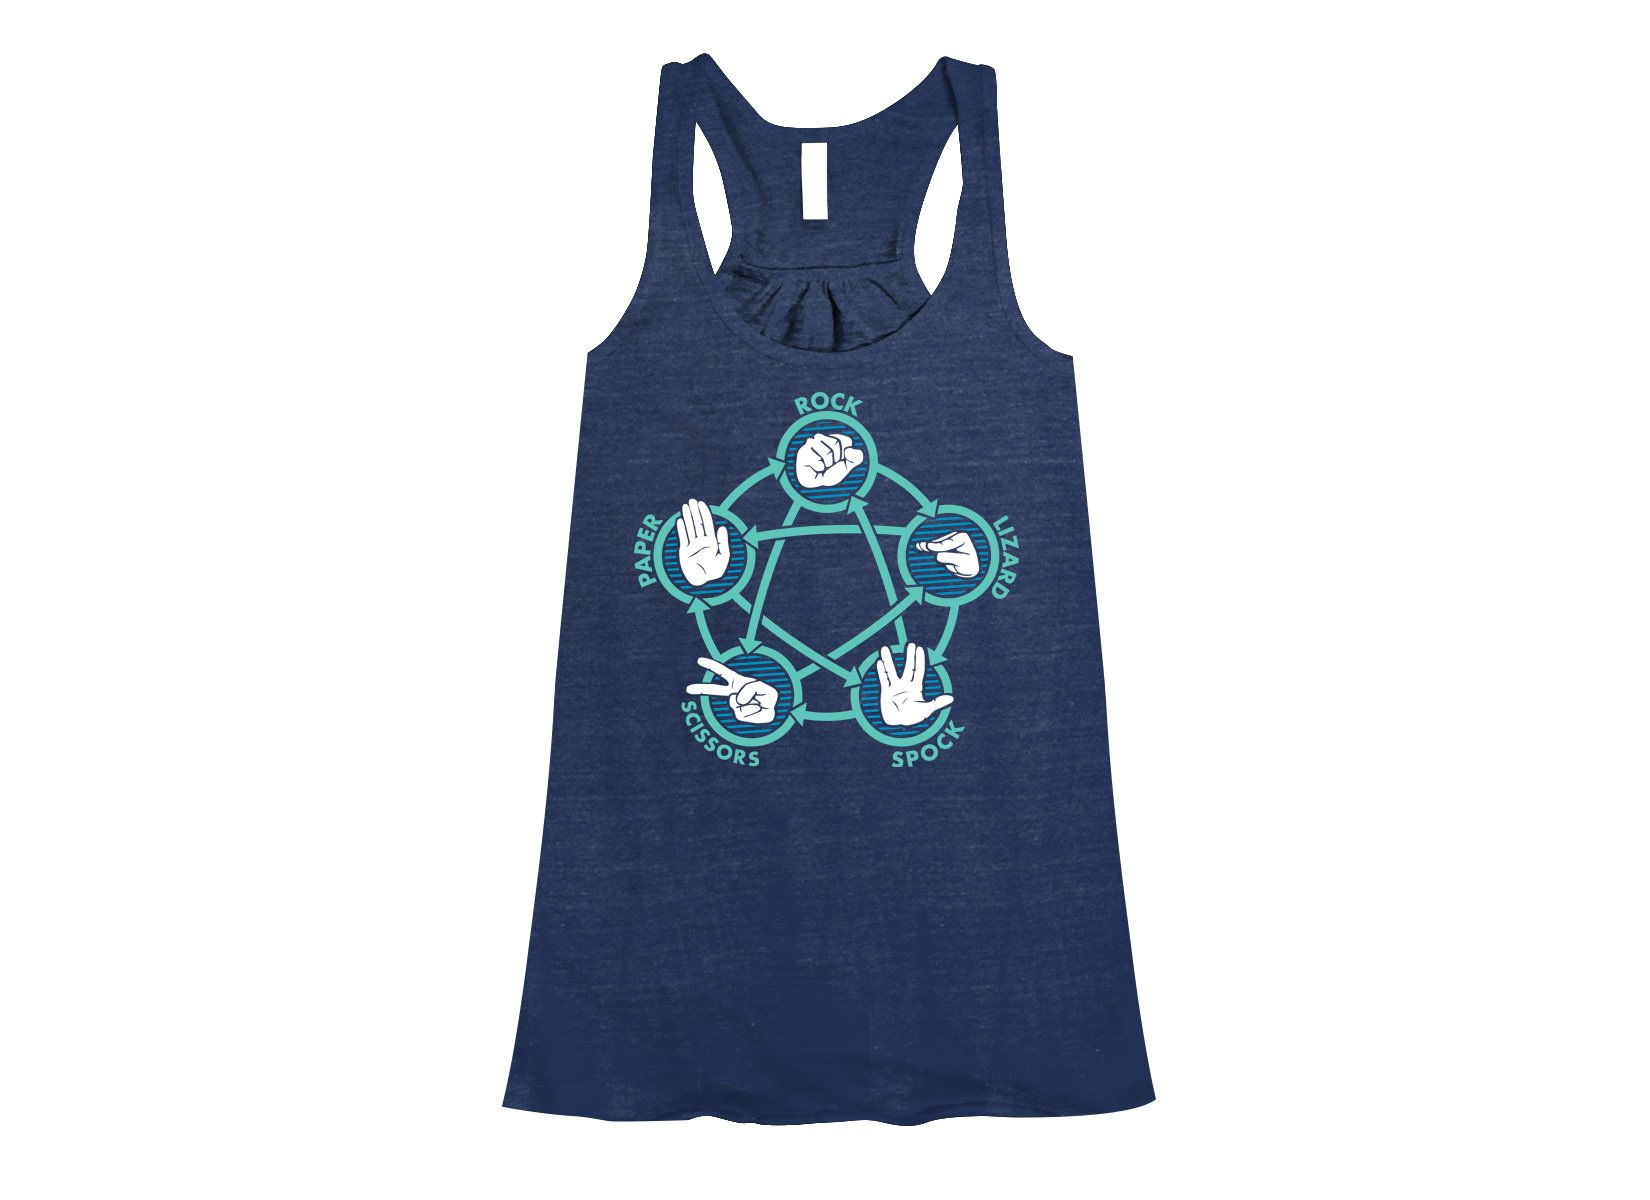 Rock Paper Scissors Lizard Spock on Womens Tanks T-Shirt